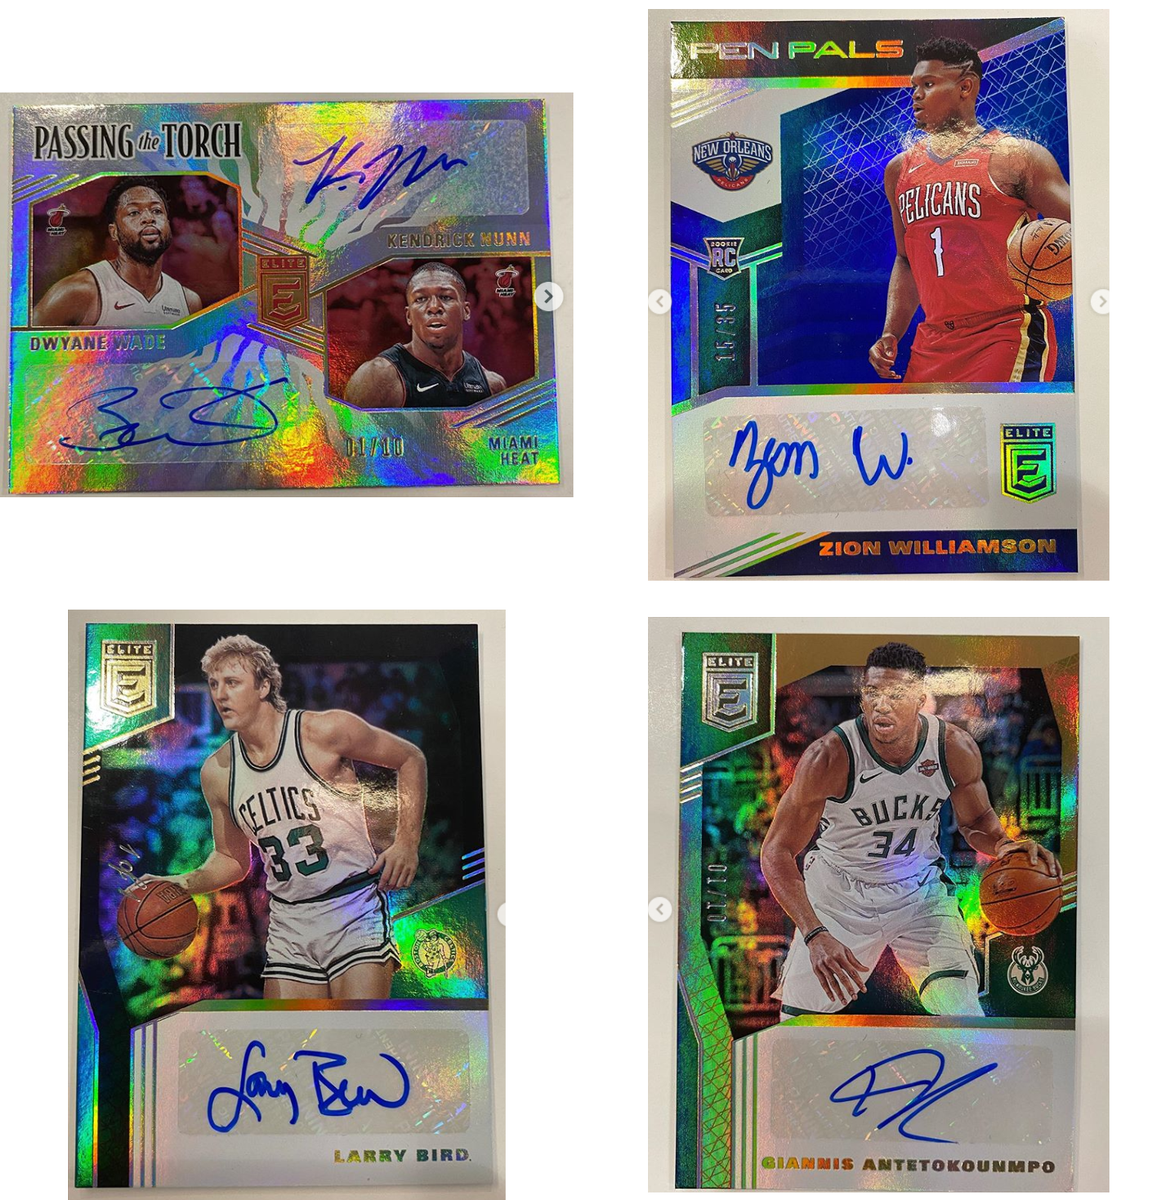 2019/20 Donruss Elite Basketball Released this Week  Find Checklists including the Group Break Team Checklist at https://t.co/3zx0wgLQi9  Team Checklists 1 Page Autograph Team Totals & more https://t.co/2kU7EUnOwG